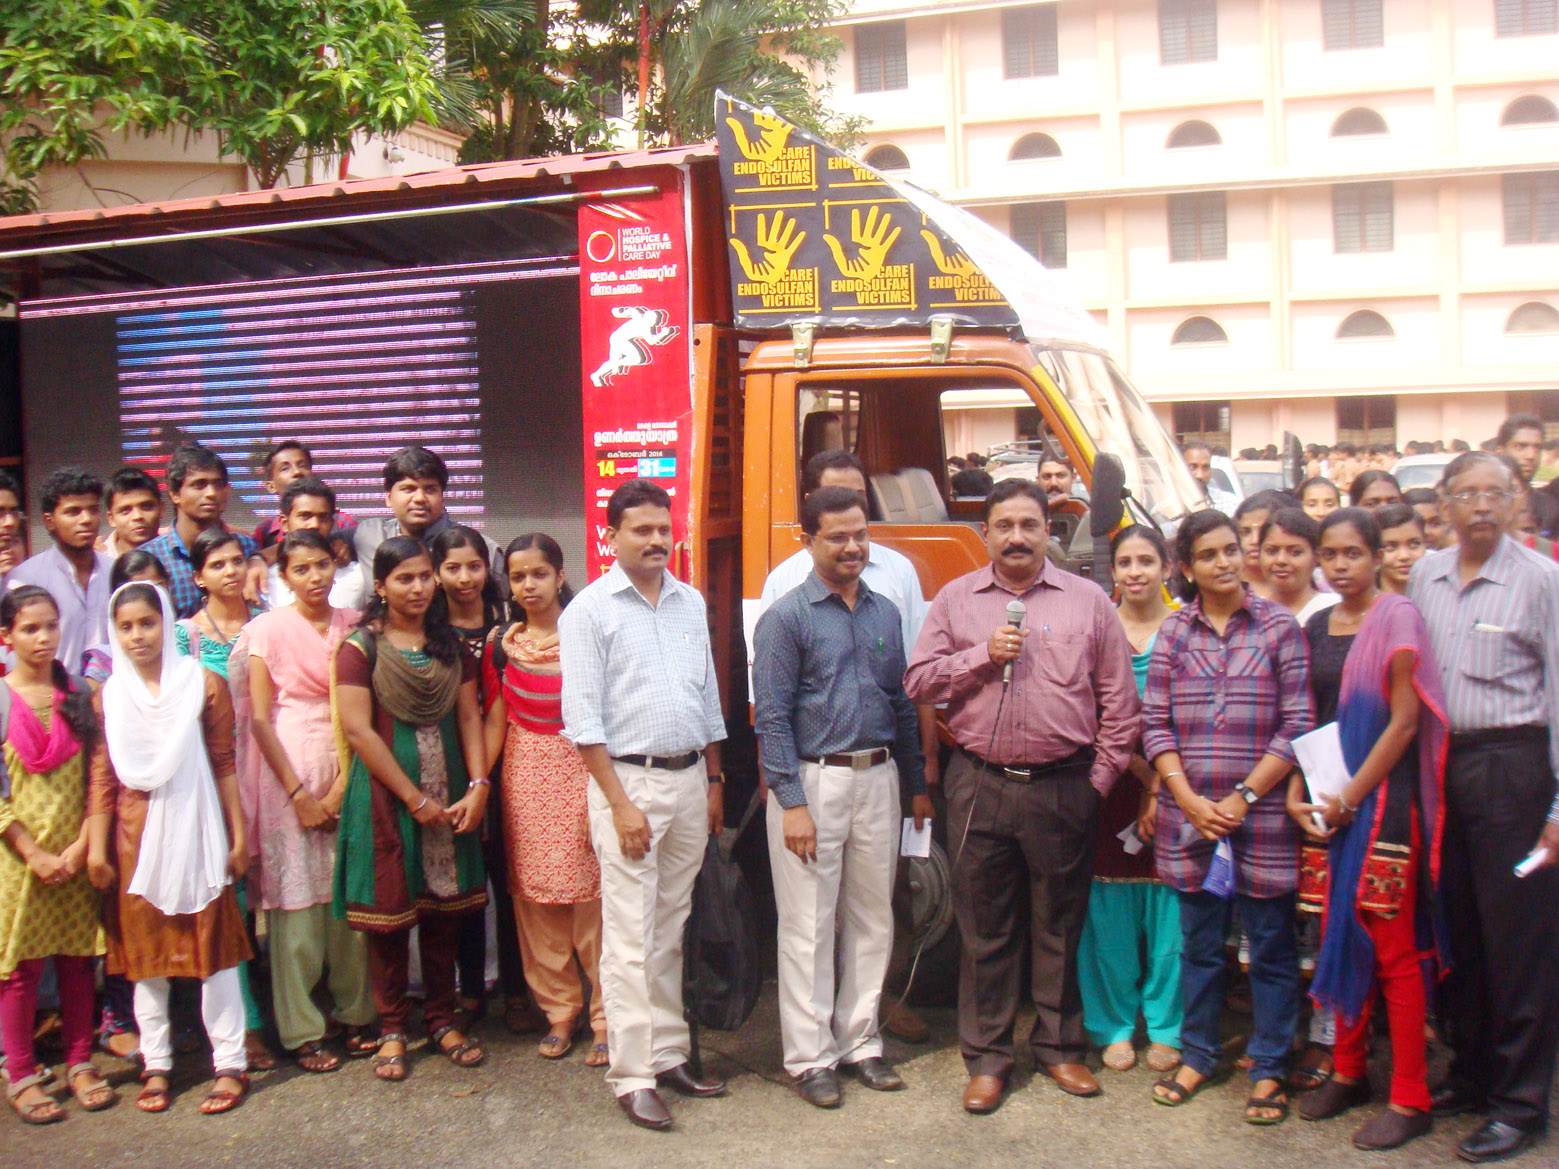 Roadshow to educational institutions re. world palliative care day 2014